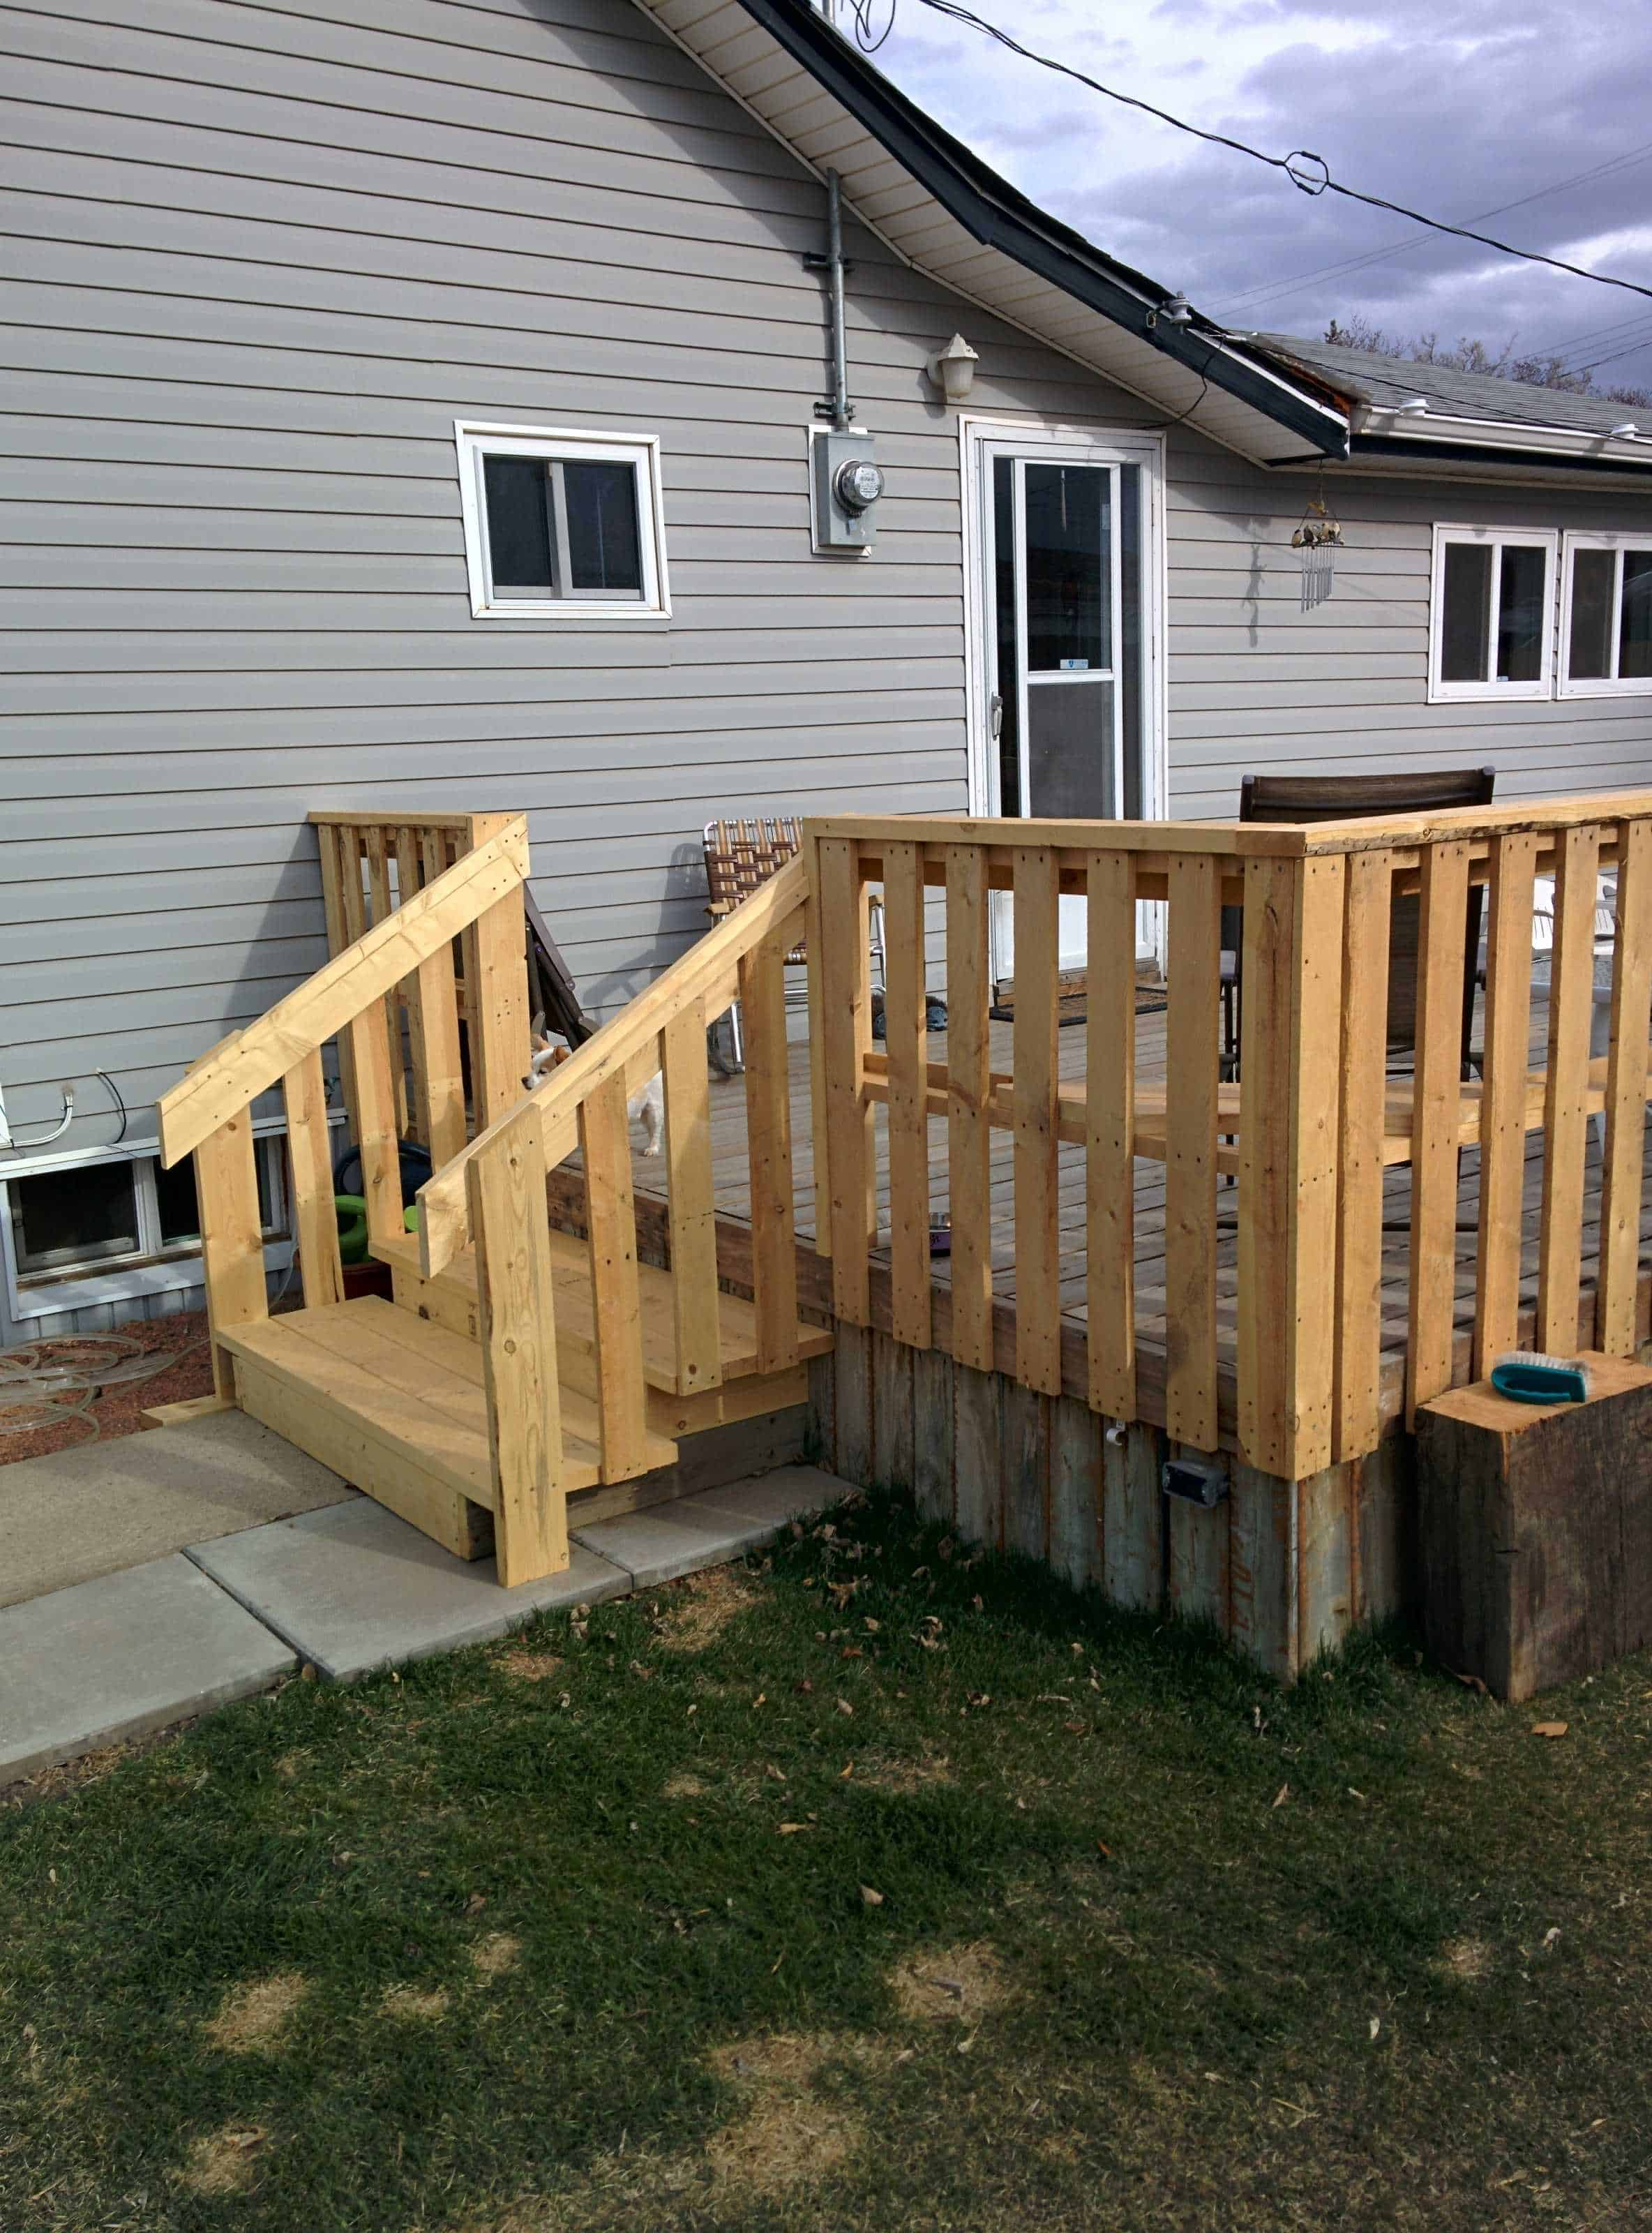 1001pallets.com-outside-pallet-deck-2 Painting Outside Of Mobile Home on improving the exterior of a manufactured home, painting interior mobile home, drawing of mobile home, color of mobile home, painting the exterior of your home, painting over mobile home walls,